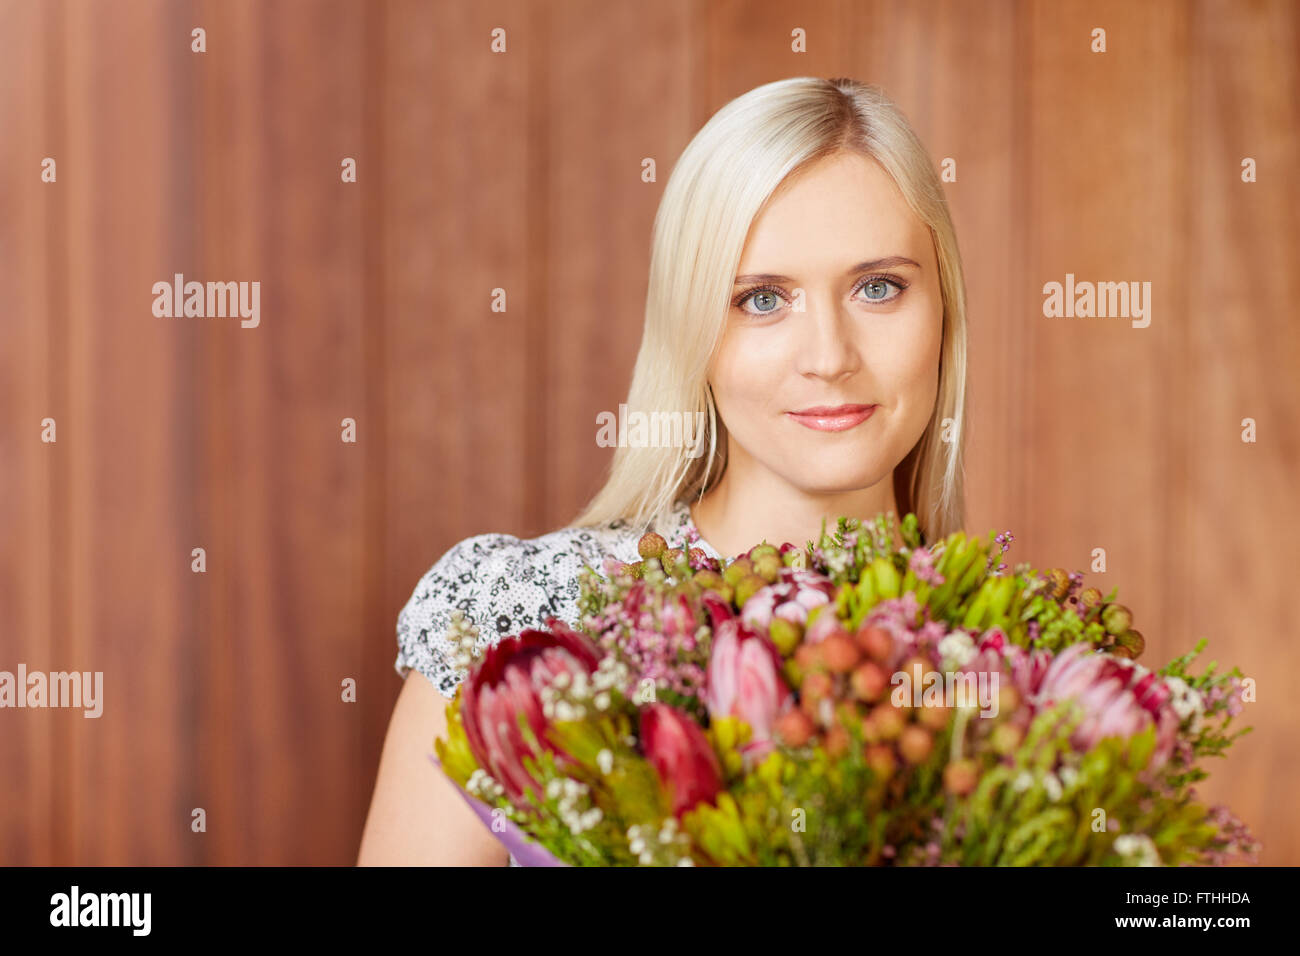 As pretty as a flower - Stock Image